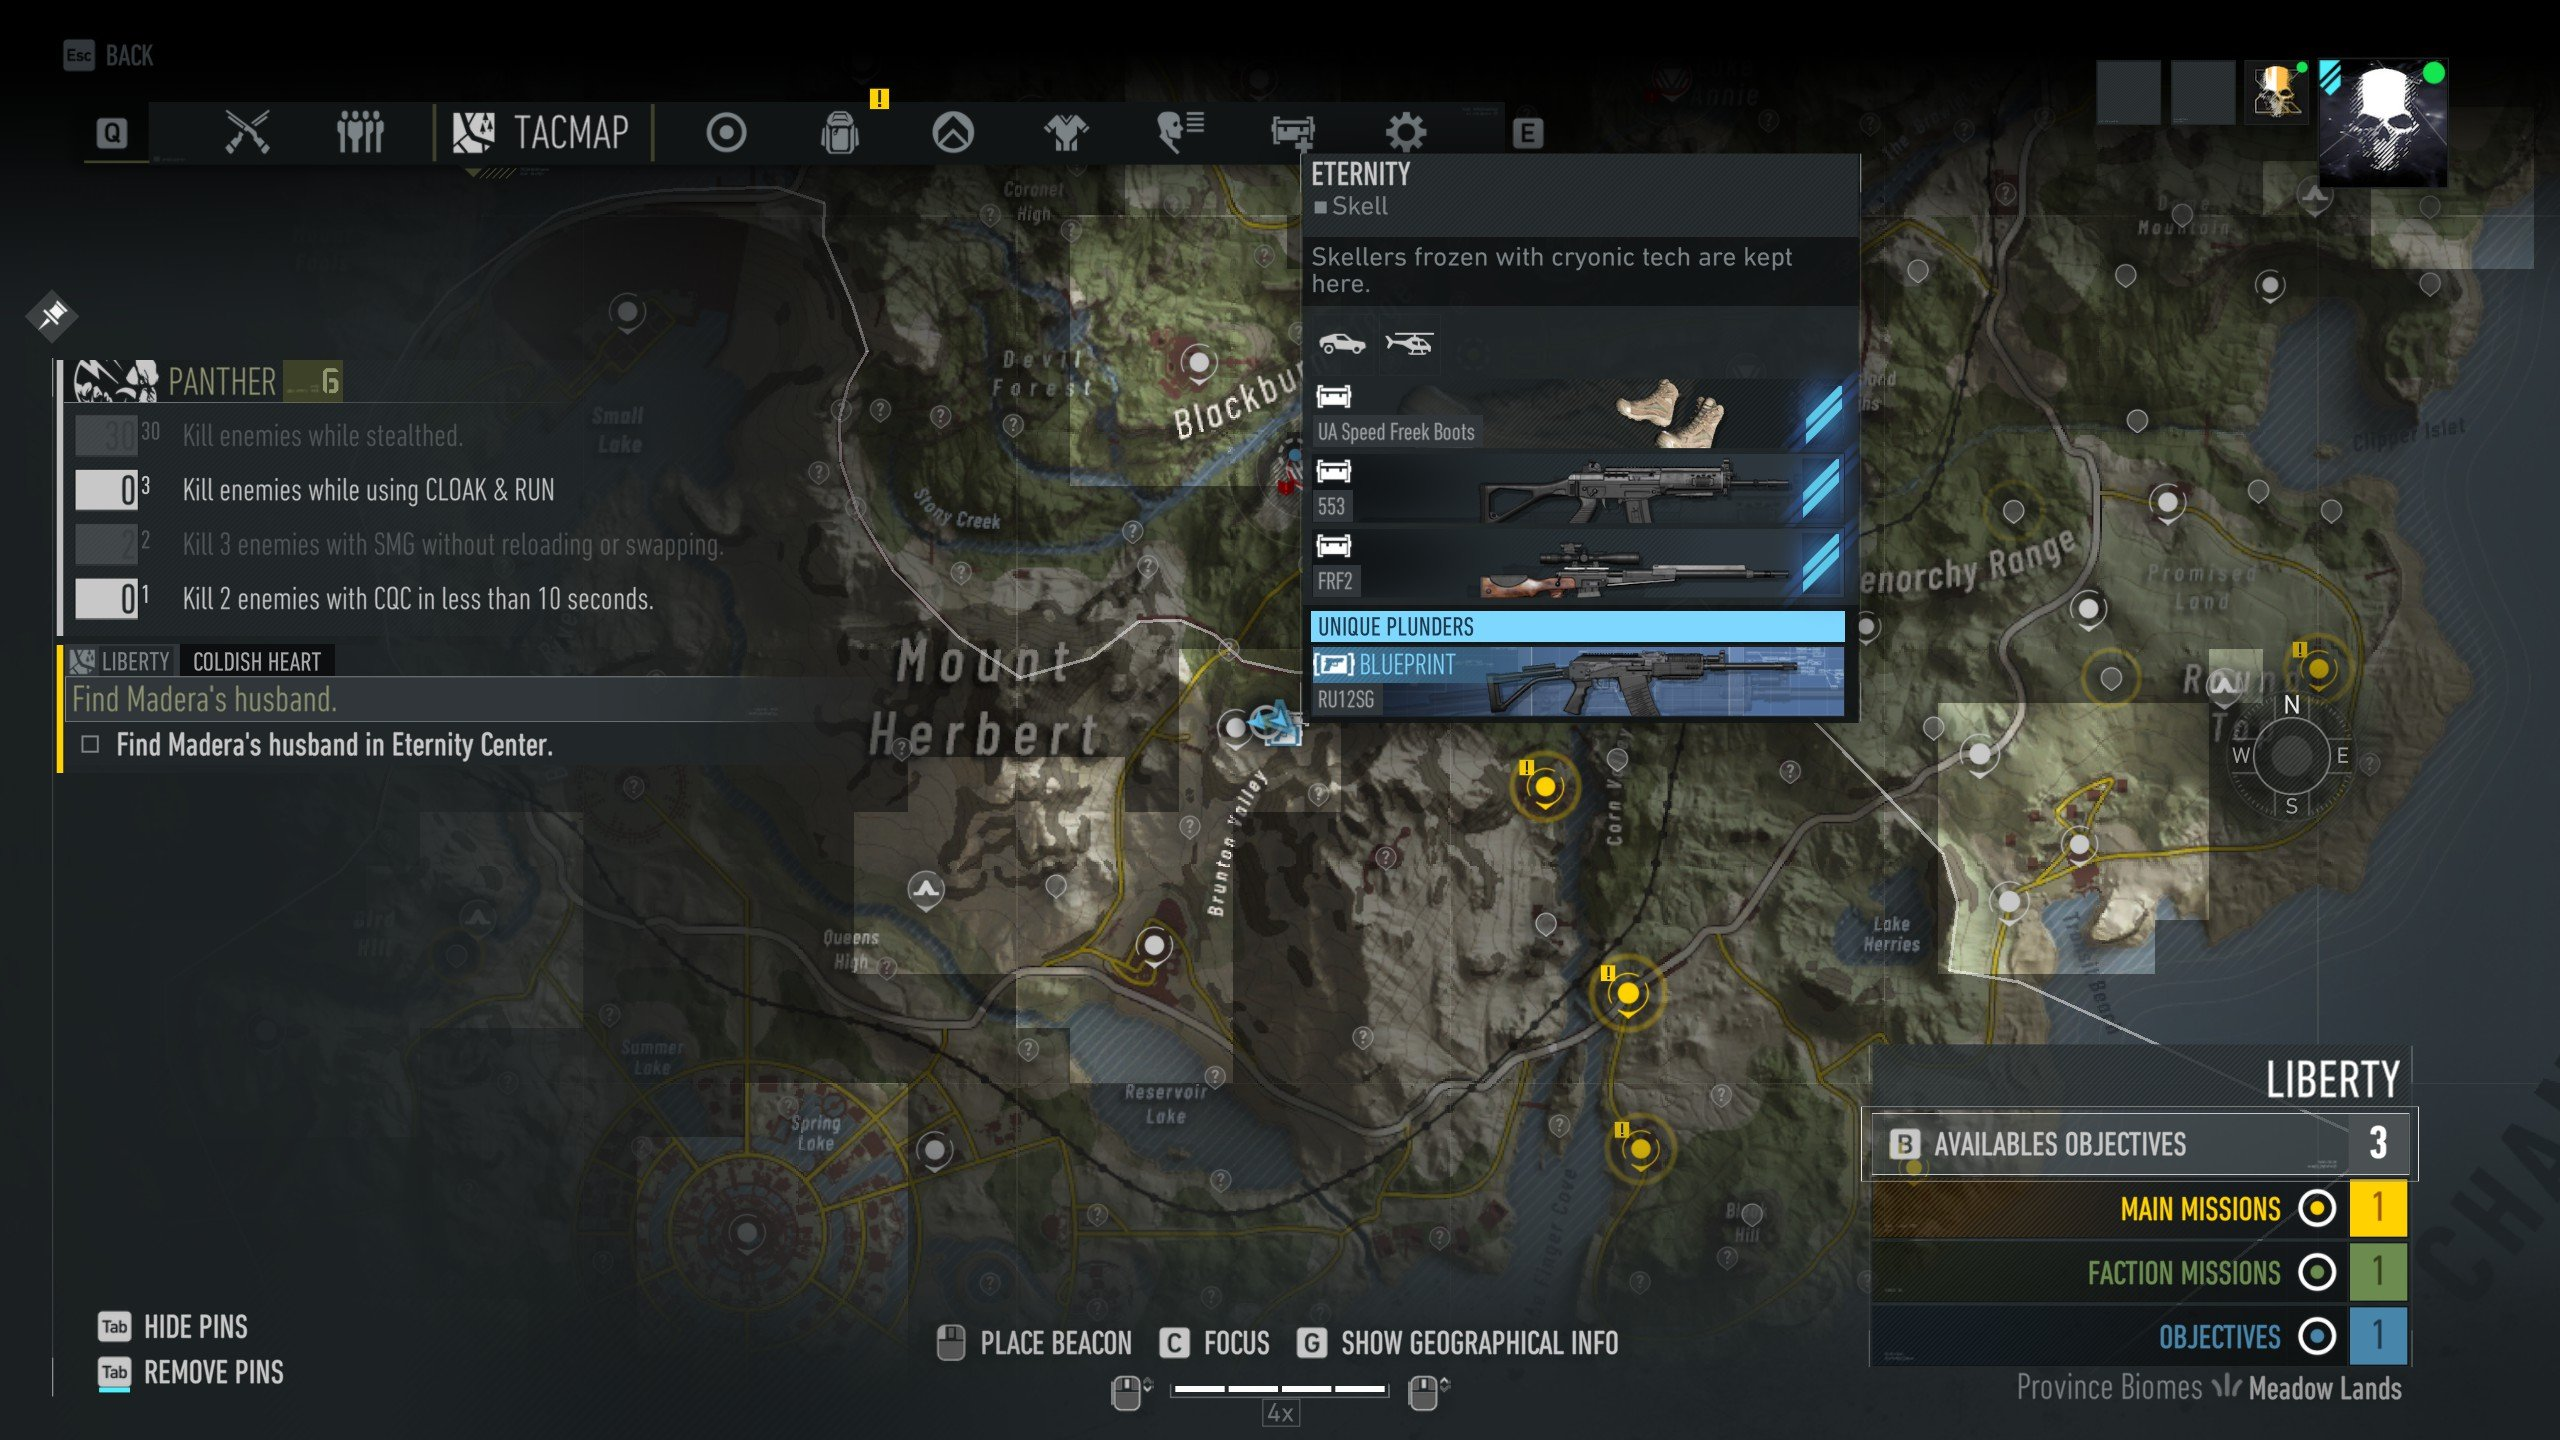 MP5 Blueprint Location Ghost Recon Breakpoint